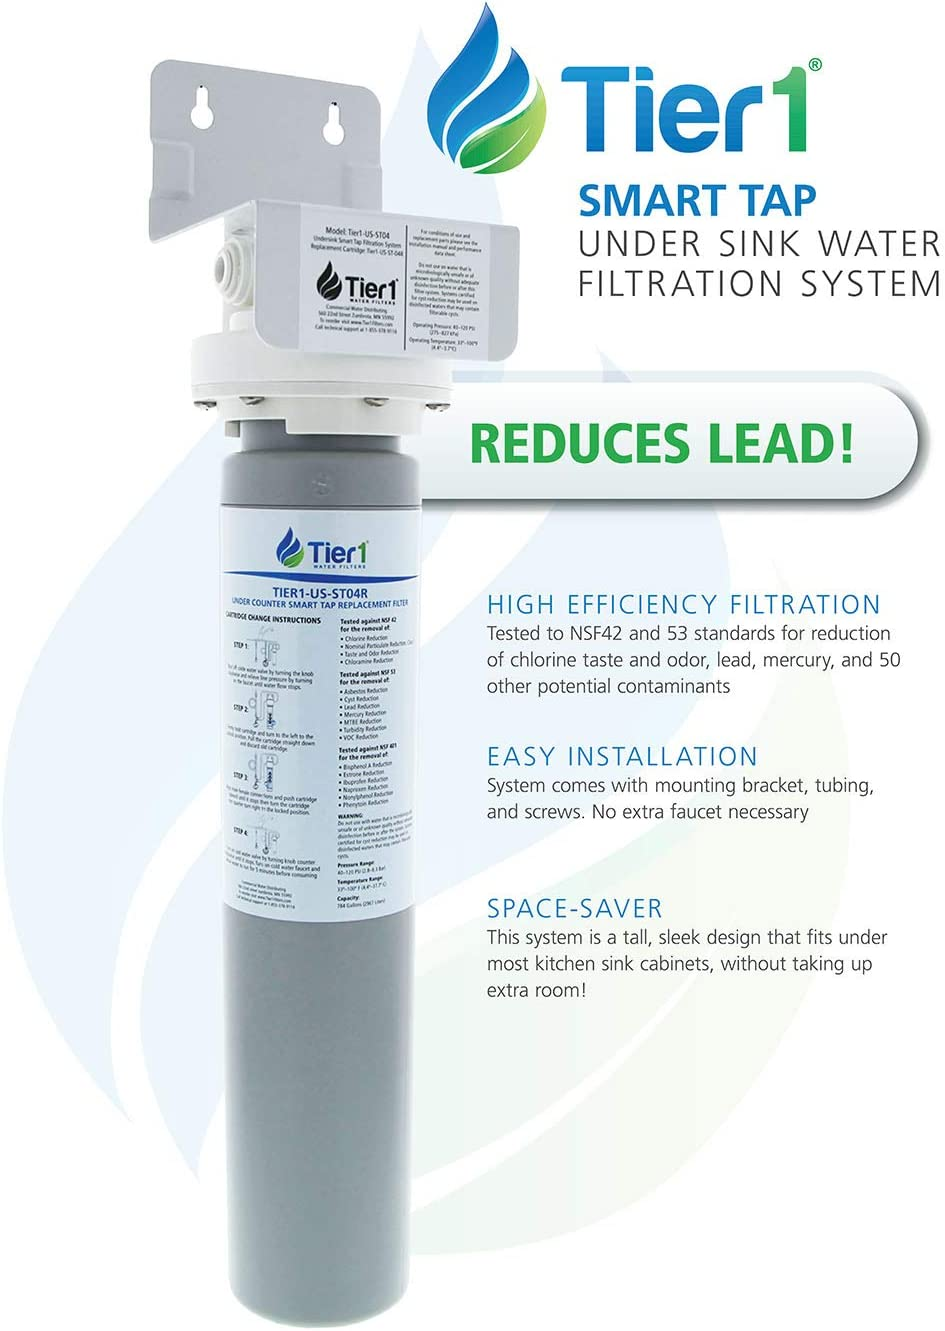 for Tier1 Under Sink Drinking Water Filtration System Mer reduces Chlorine Lead